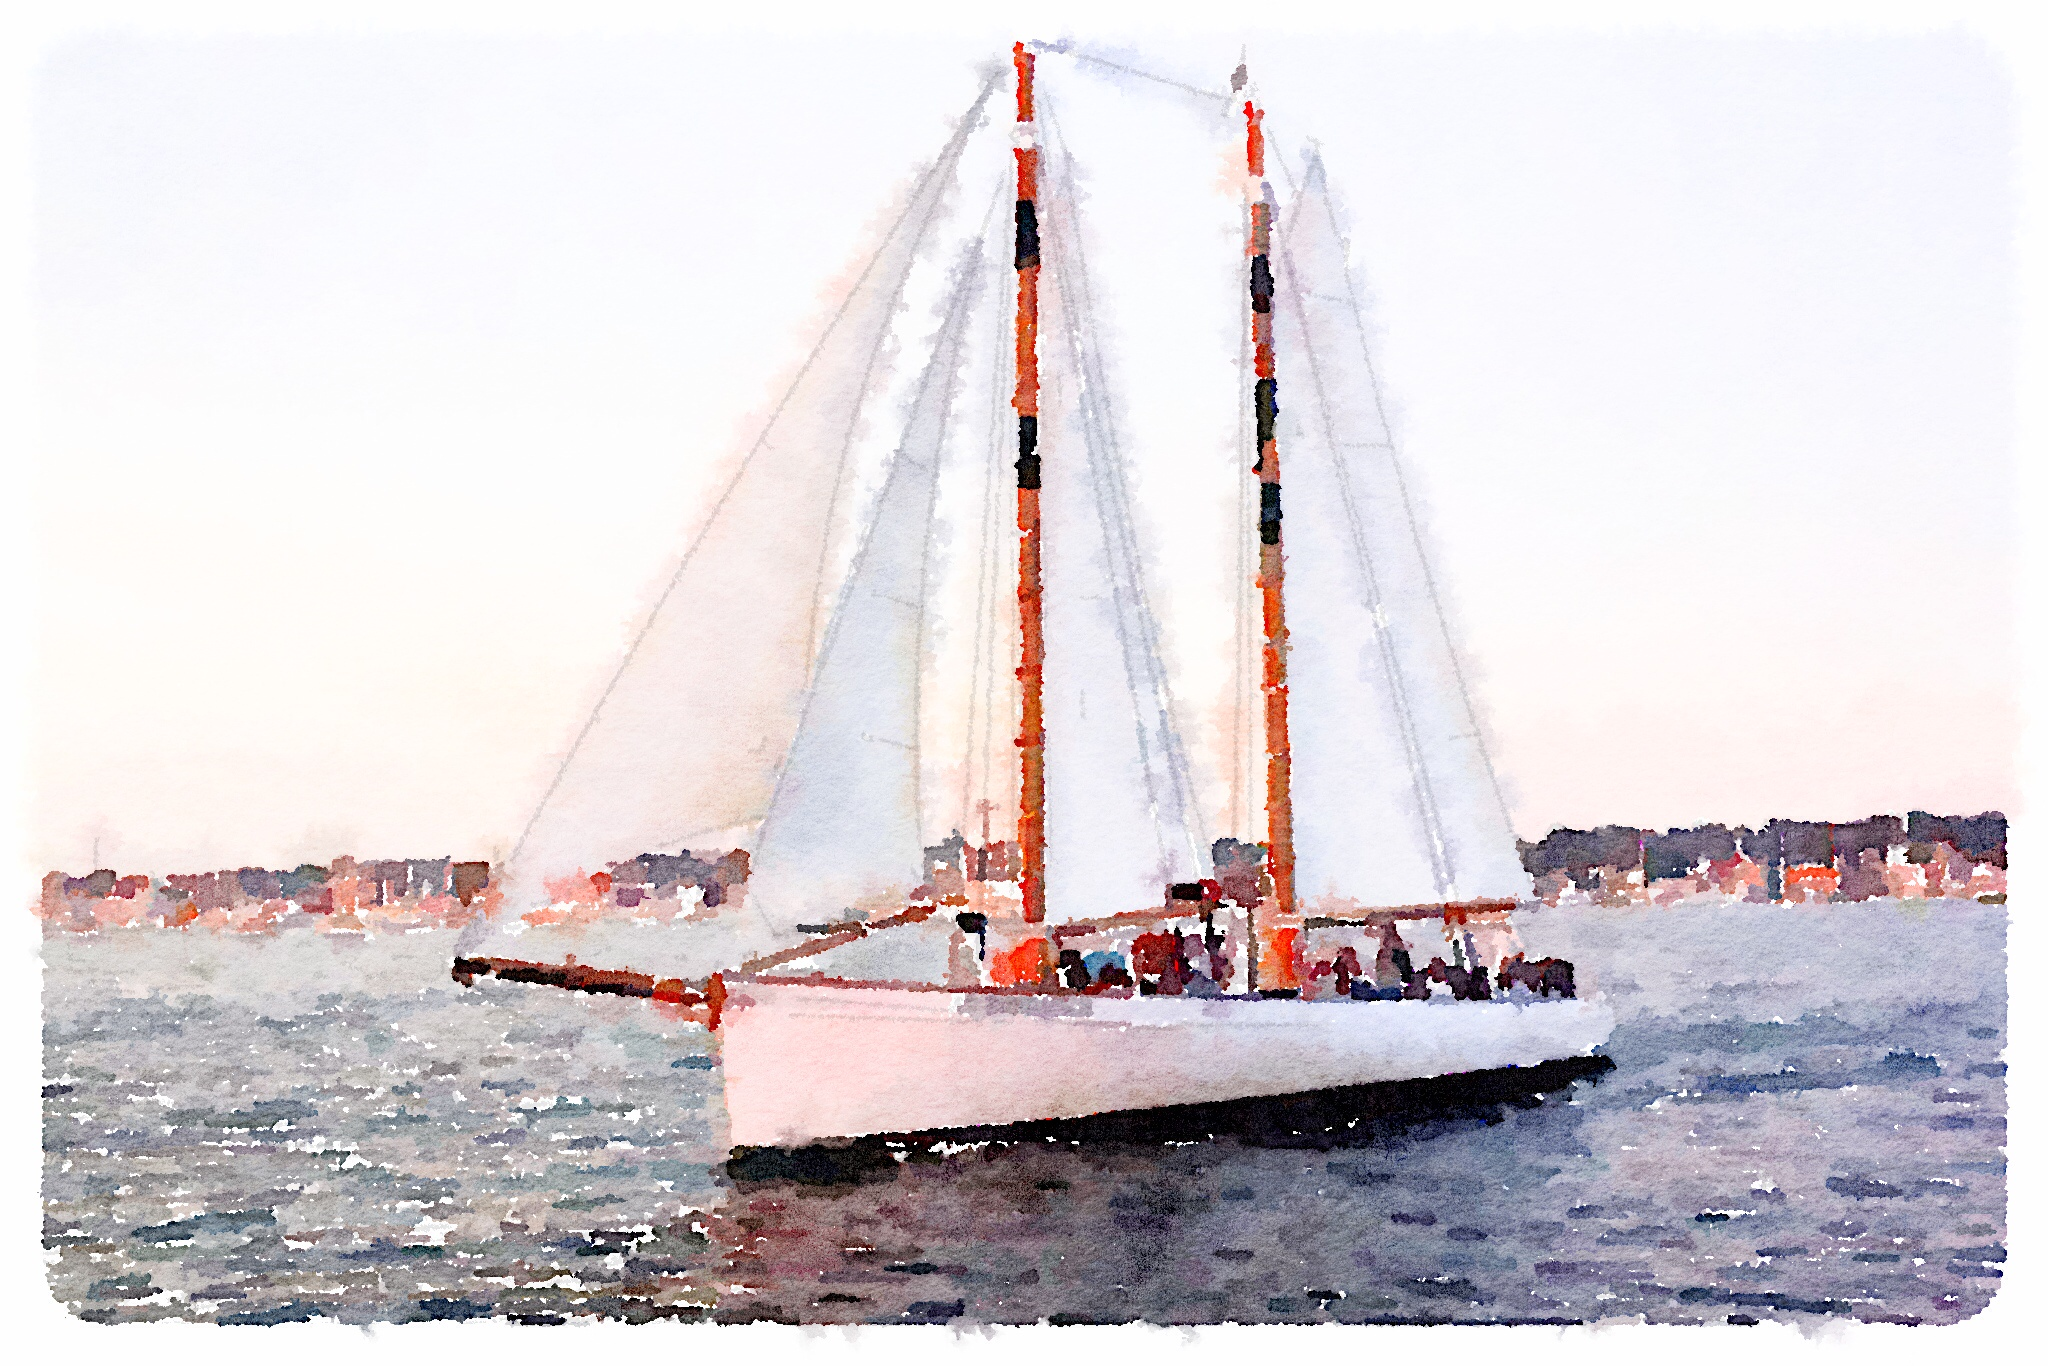 Sailing in Newport, RI